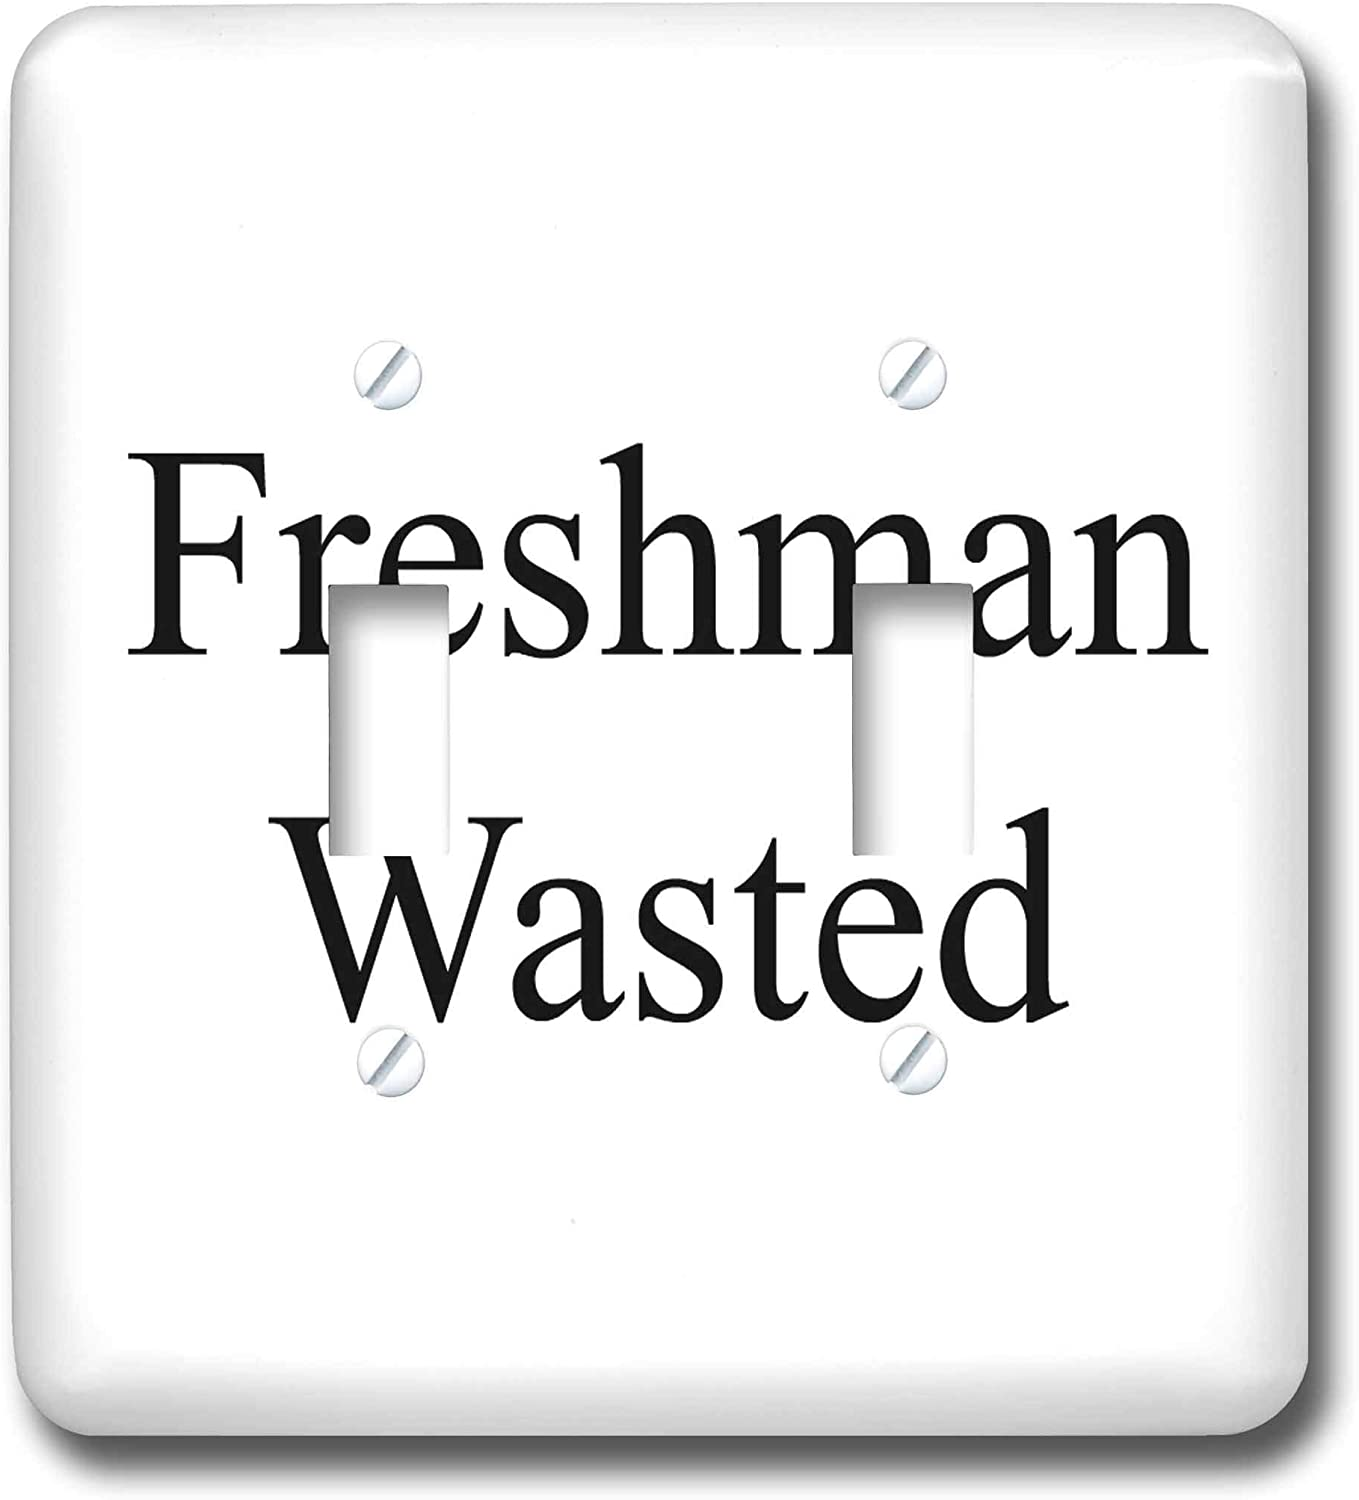 3dRose Carrie Merchant 3drose Quote - Image of Freshman Wasted - double toggle switch (lsp_308341_2)